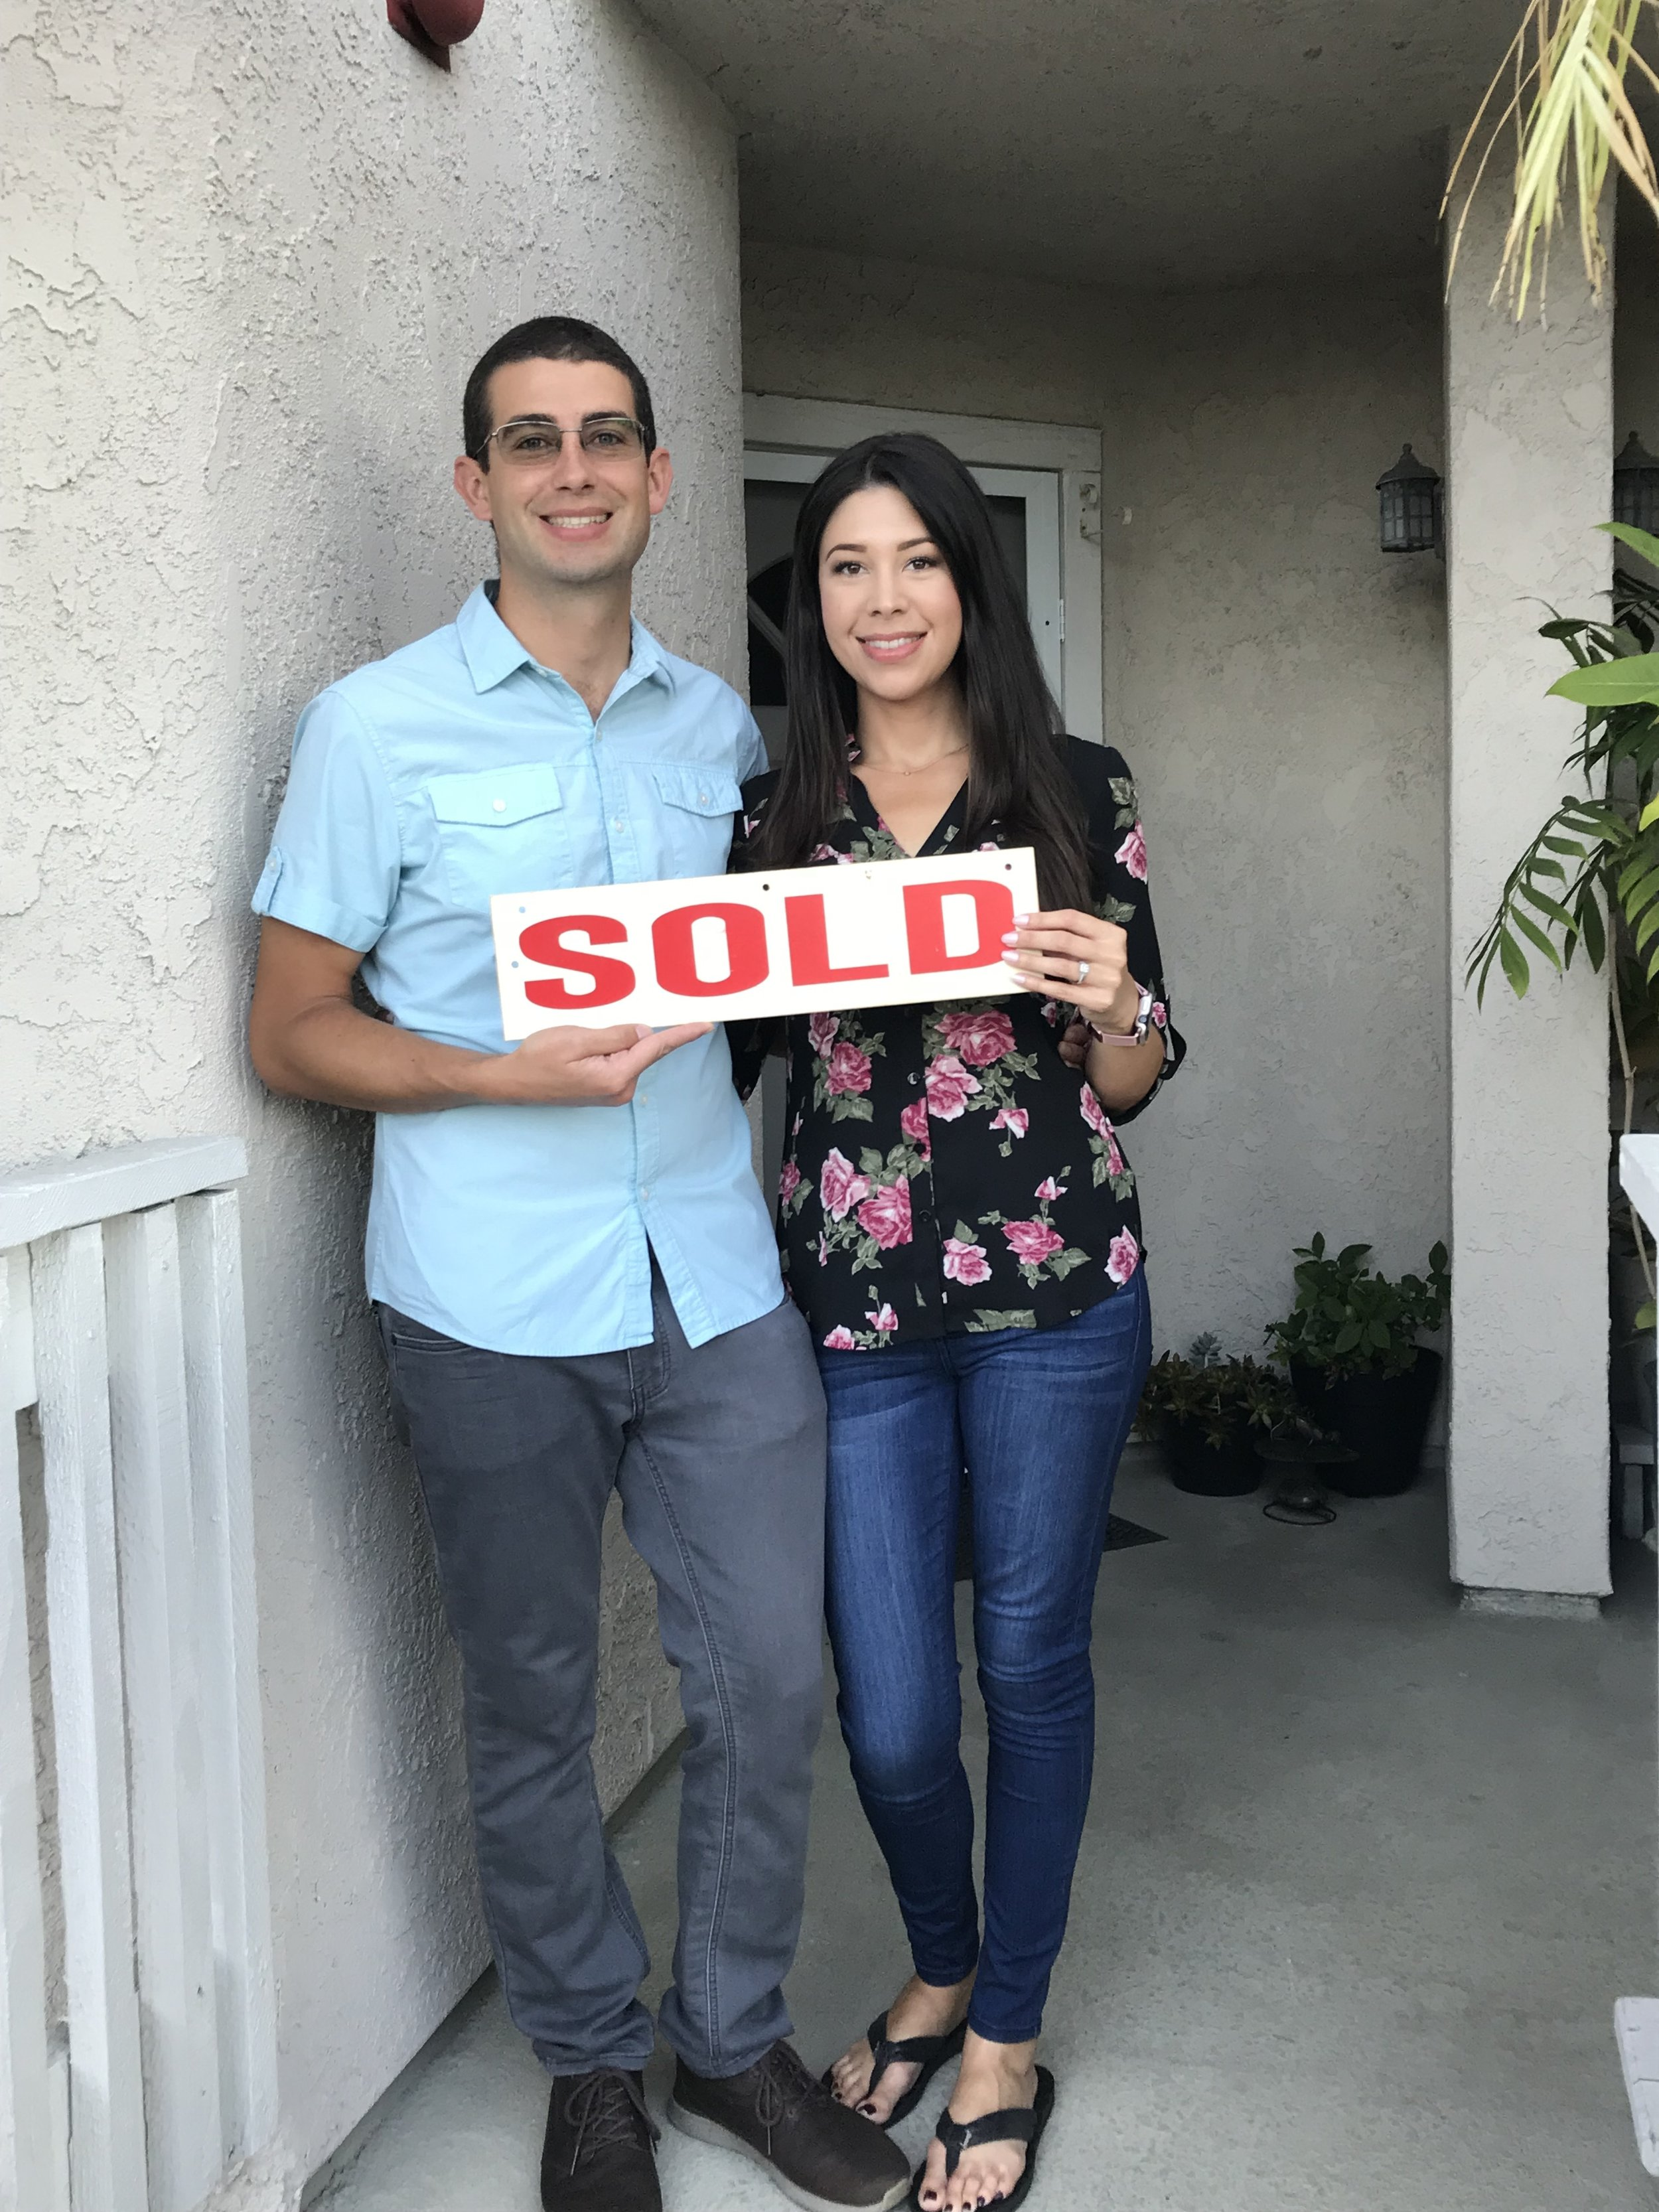 After dealing with some loud neighbors & saving money for some time, Nick & Melissa decided it was time to make a move! As with any buyer we work with, we sat down with them to get familiar with the most important things they needed in the home; close to the beach, close to work, garage space, etc. We quickly got to work looking for the perfect fit & through networking with another agent in the area, we learned of a home that was about to hit the market. After competing against multiple buyers, the sellers chose Nick & Melissa's offer because they were able to work together & make the transaction fair for both parties. We're pleased to say that they remain friends to this day! We are so grateful that Nick & Melissa gave us the opportunity to be their guides in this process. It was a treat to be in their corner & work with such great people!